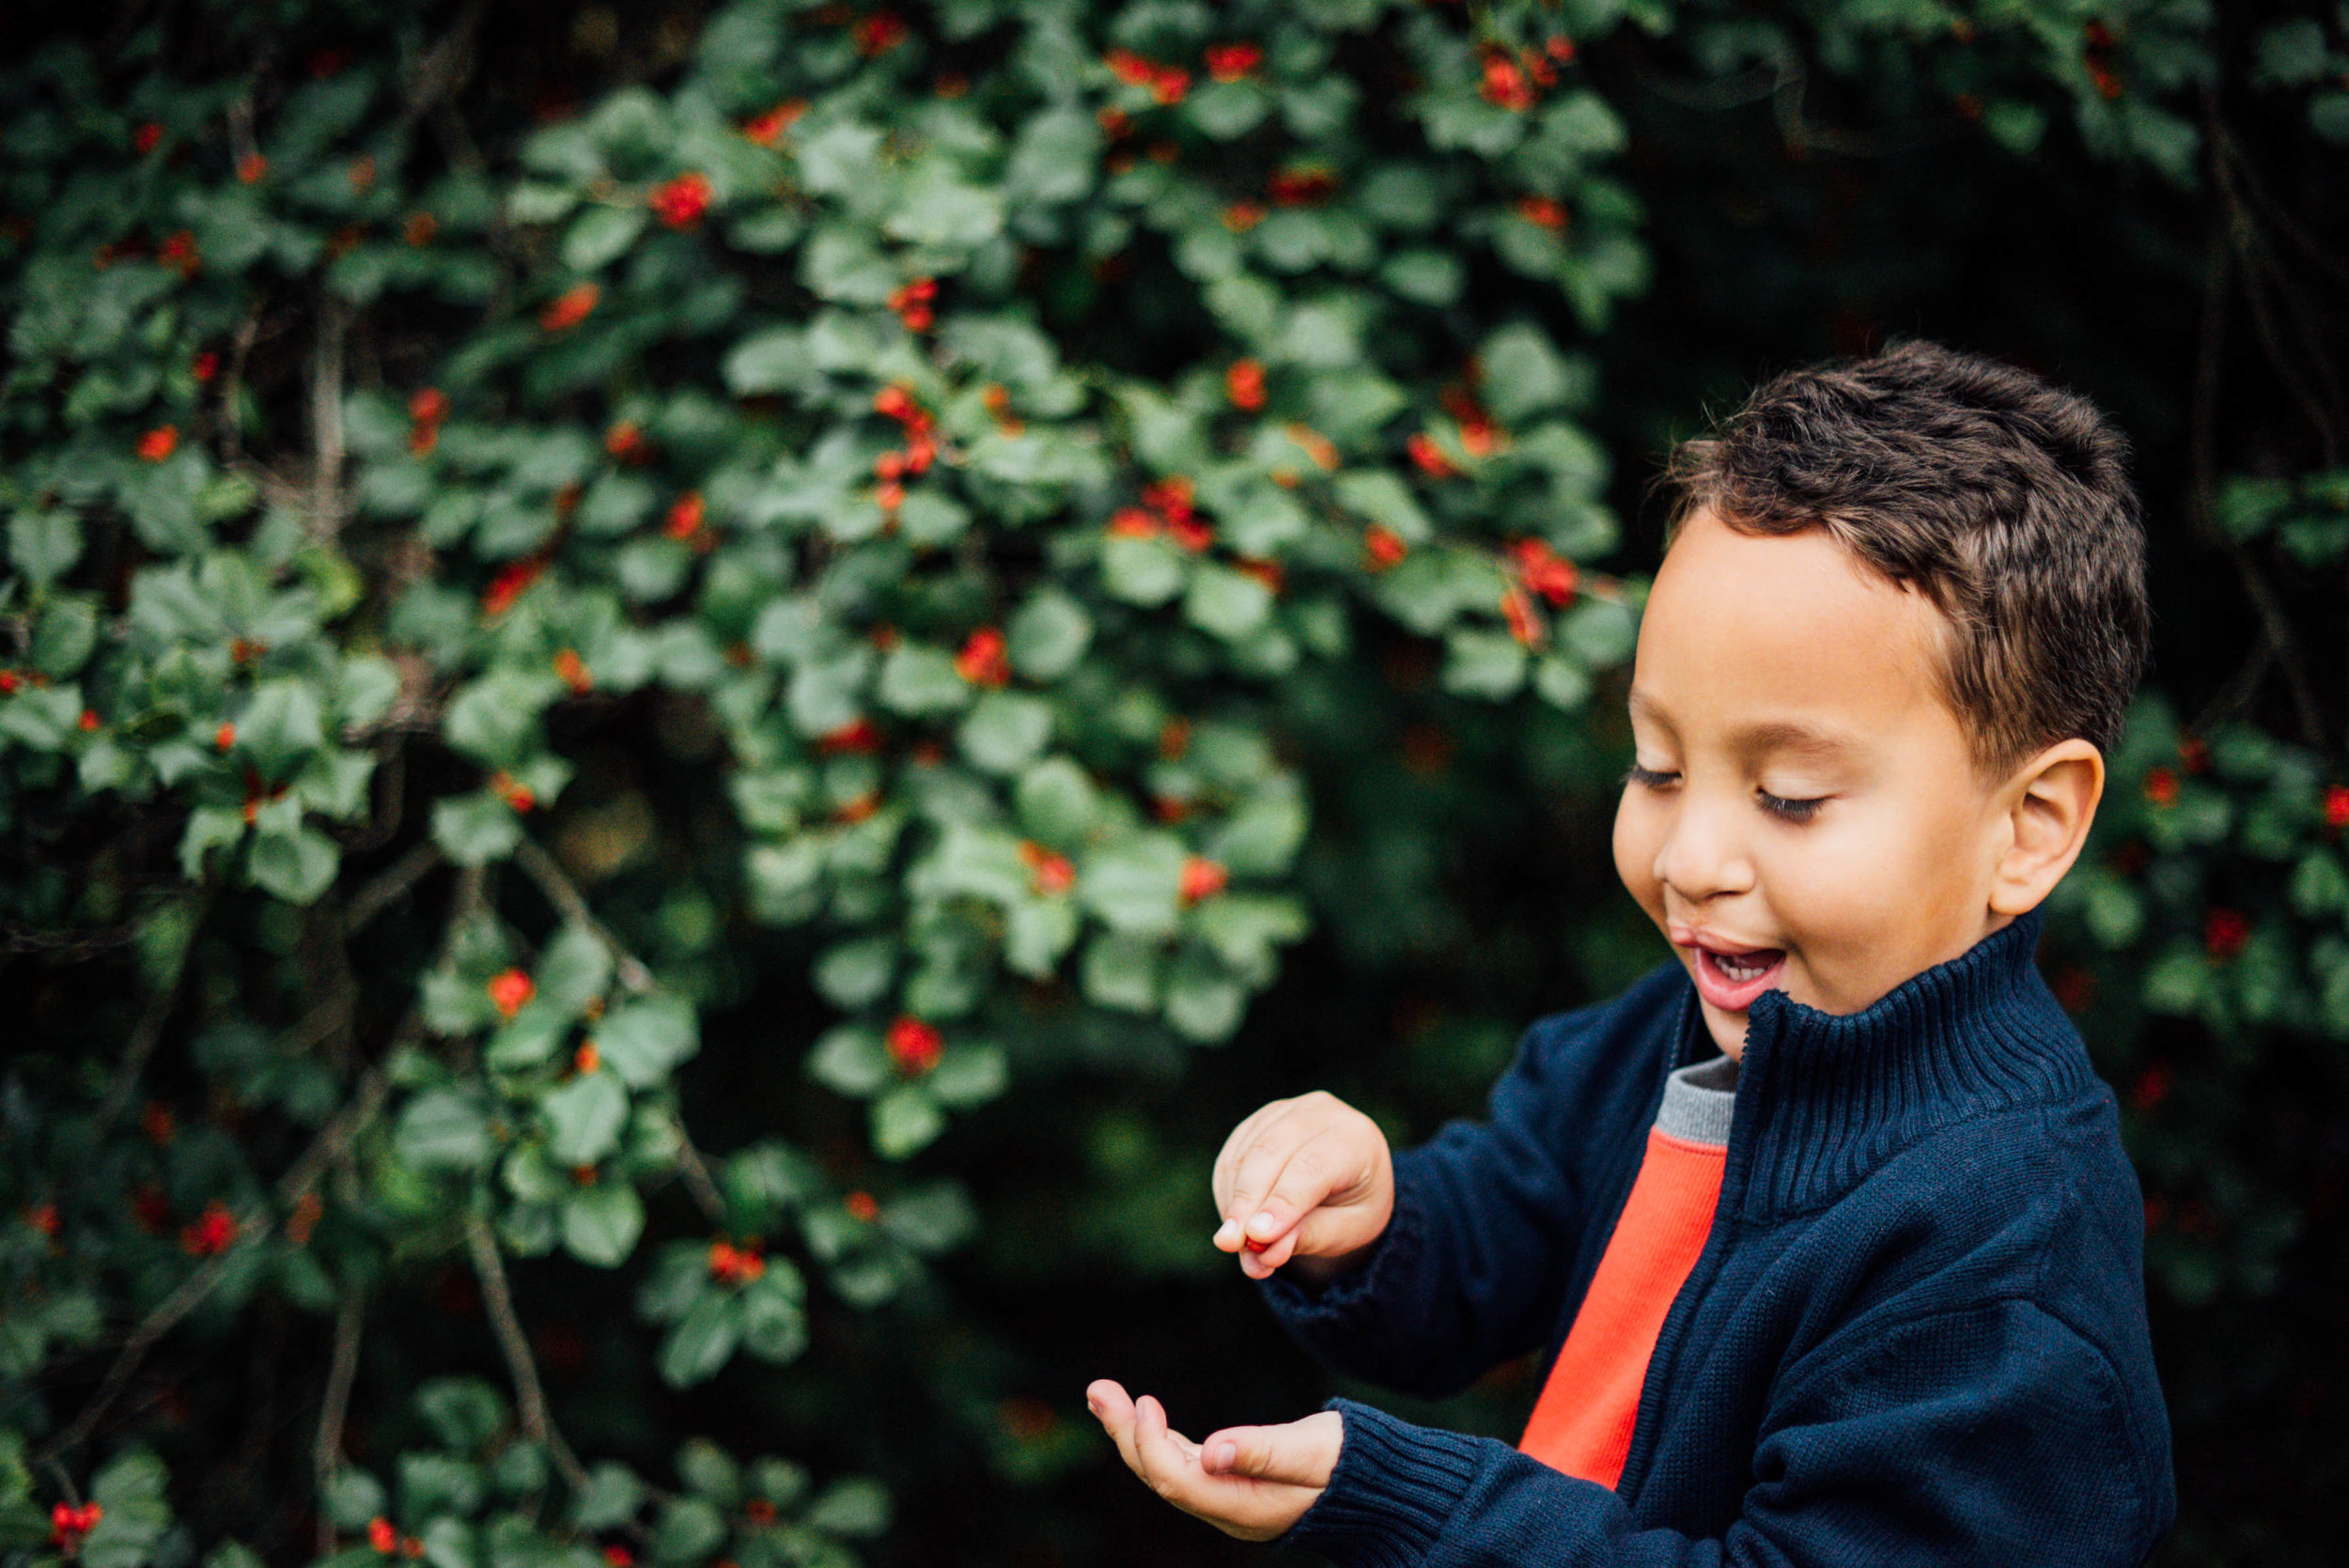 boy picking holly berries